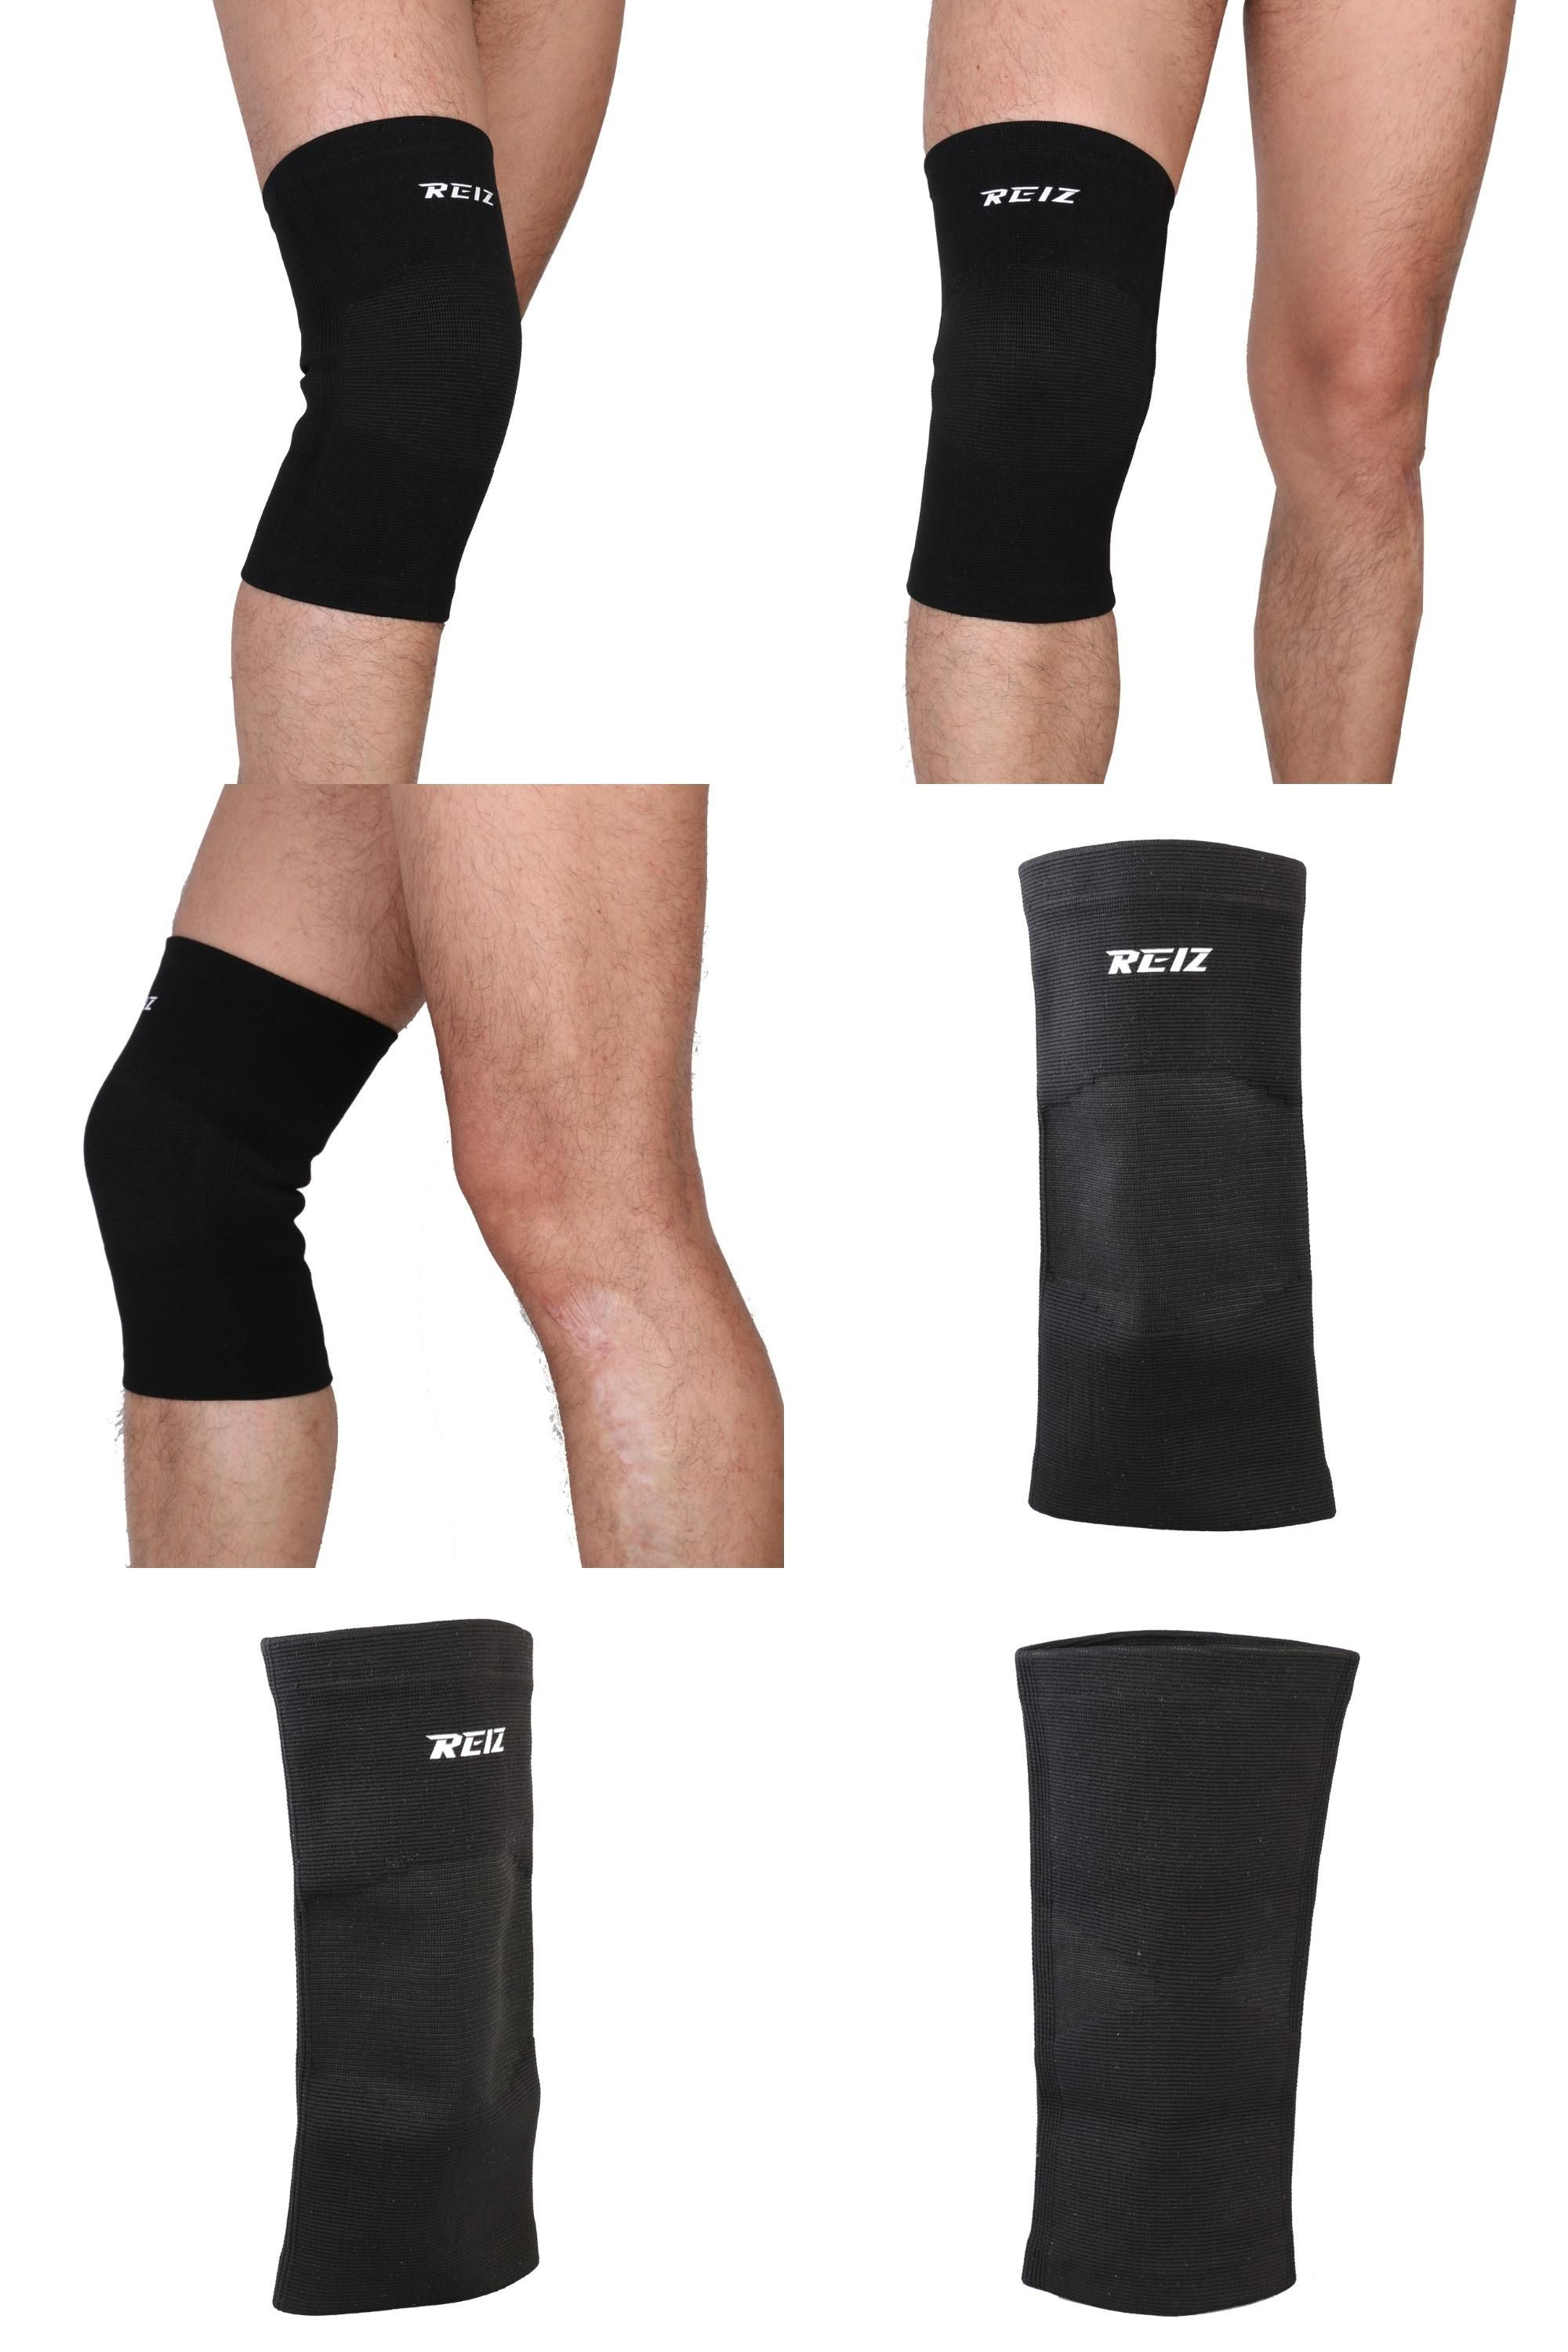 Visit To Buy Elastic Sports Leg Knee Support Brace Wrap Protector Knee Pads Sleeve Cap Patella Guard Volleyball Kn Knee Support Braces Knee Support Knee Pads